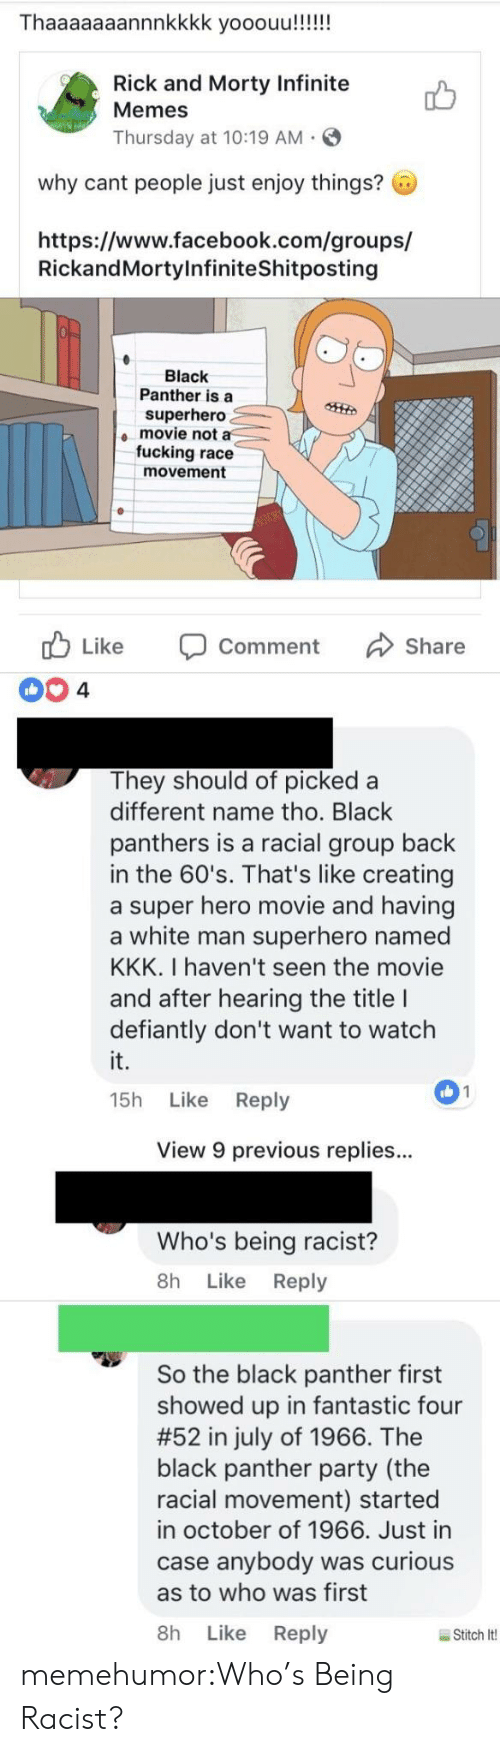 Superhero Movie: Thaaaaaaannnkkkk yooouu!!!!!  Rick and Morty Infinite  Memes  Thursday at 10:19 AM  why cant people just enjoy things?  https://www.facebook.com/groups/  RickandMortylnfiniteShitposting  Black  Panther is a  superhero  movie not a  fucking race  movement  cb Like Comment Share  They should of picked a  different name tho. Black  panthers is a racial group back  in the 60's. That's like creating  a super hero movie and having  a white man superhero named  KKK. I haven't seen the movie  and after hearing the title I  defiantly don't want to watch  it.  15h Like Reply  01  View 9 previous replies..  Who's being racist?  8h Like Reply  So the black panther first  showed up in fantastic four  #52 in july of 1966. The  black panther party (the  racial movement) started  in october of 1966. Just in  case anybody was curious  as to who was first  8h Like Reply  Stitch lt! memehumor:Who's Being Racist?